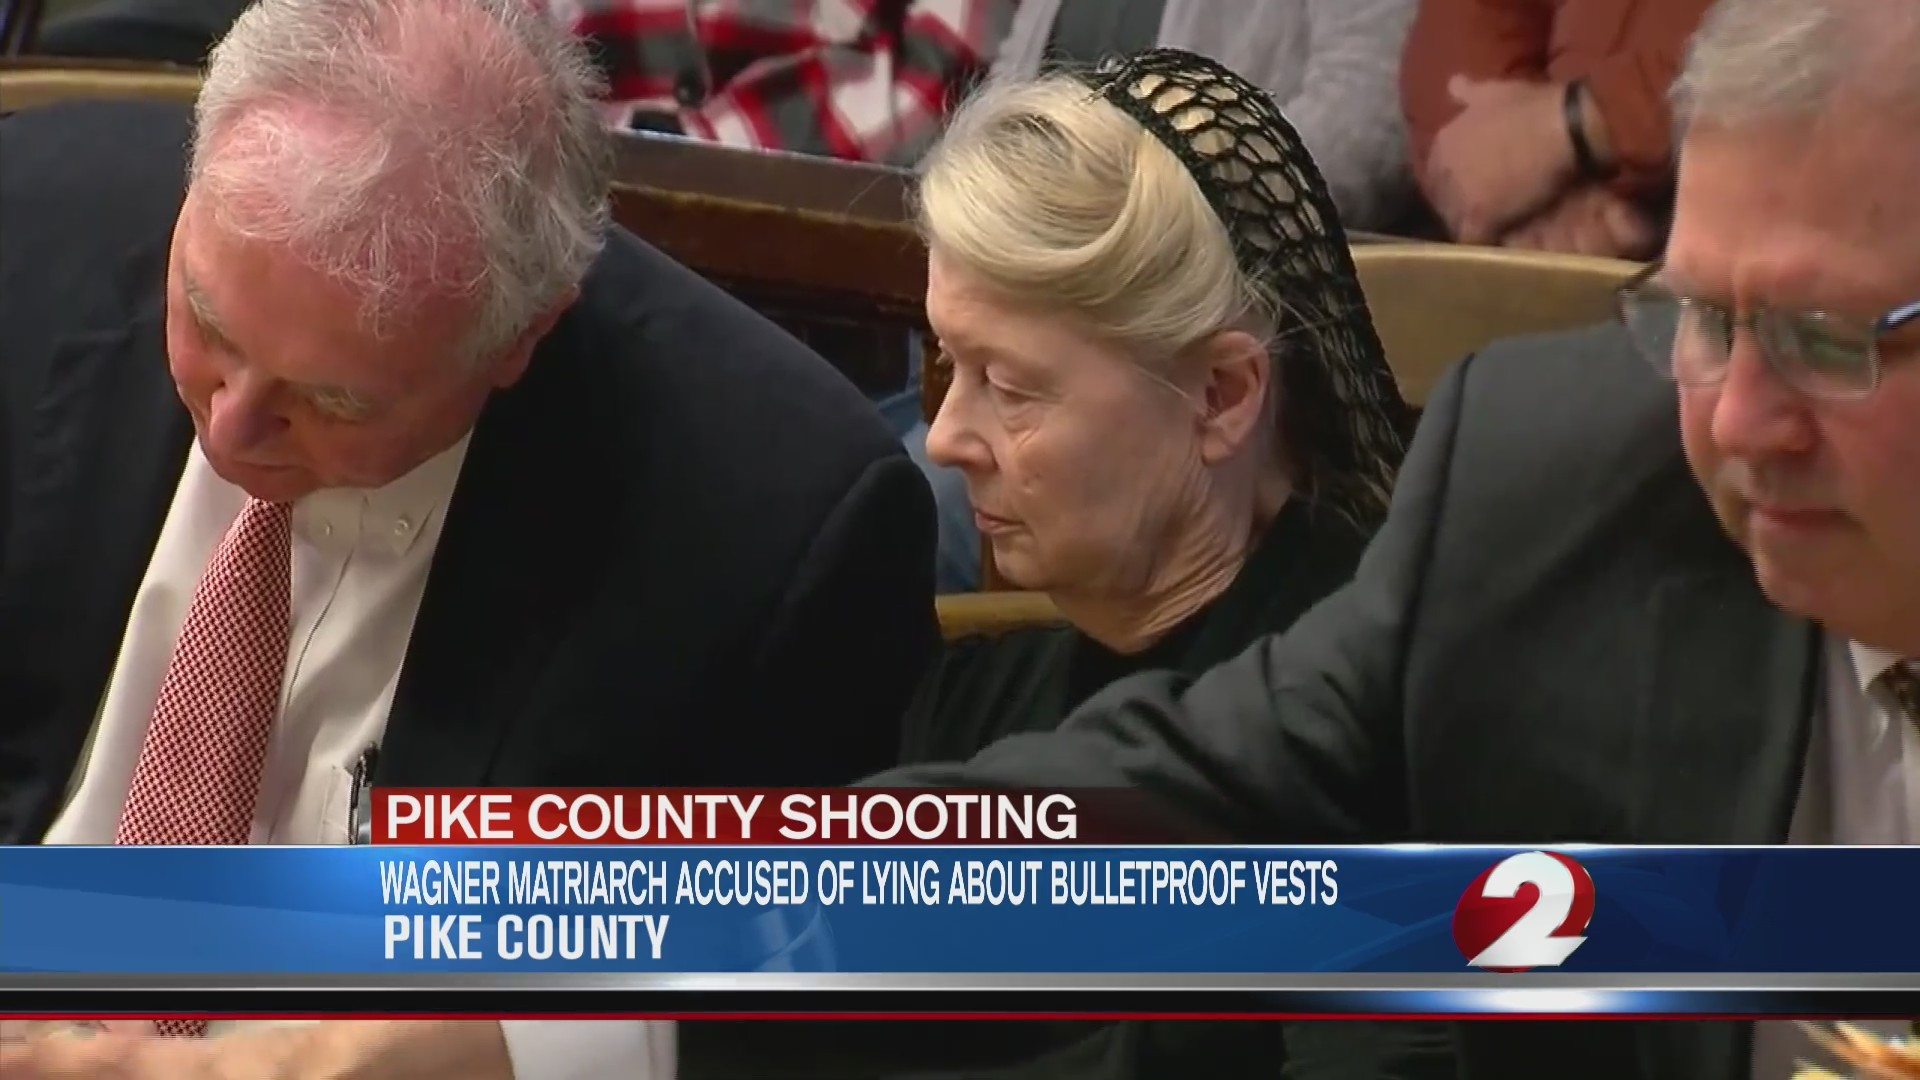 Wagner matriarch accused of lying about bulletproof vests